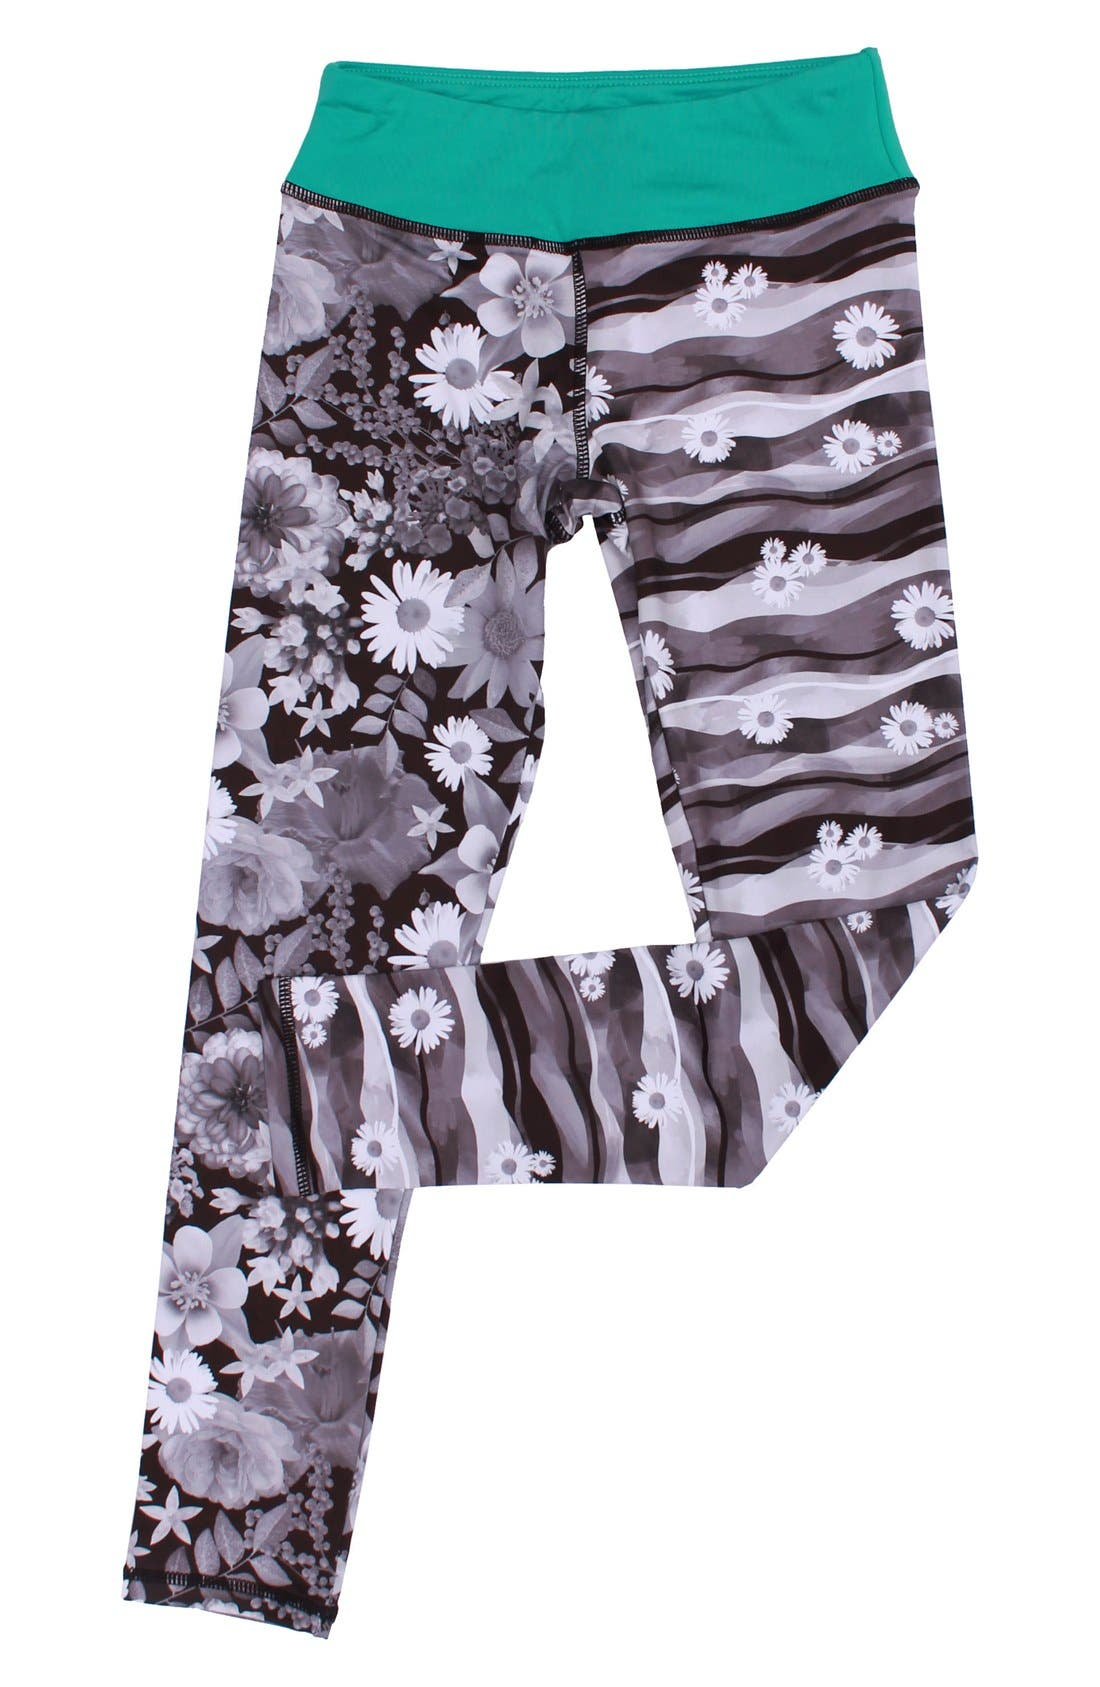 Main Image - CHOOZE Splits Mixed Print Leggings (Little Girls & Big Girls)